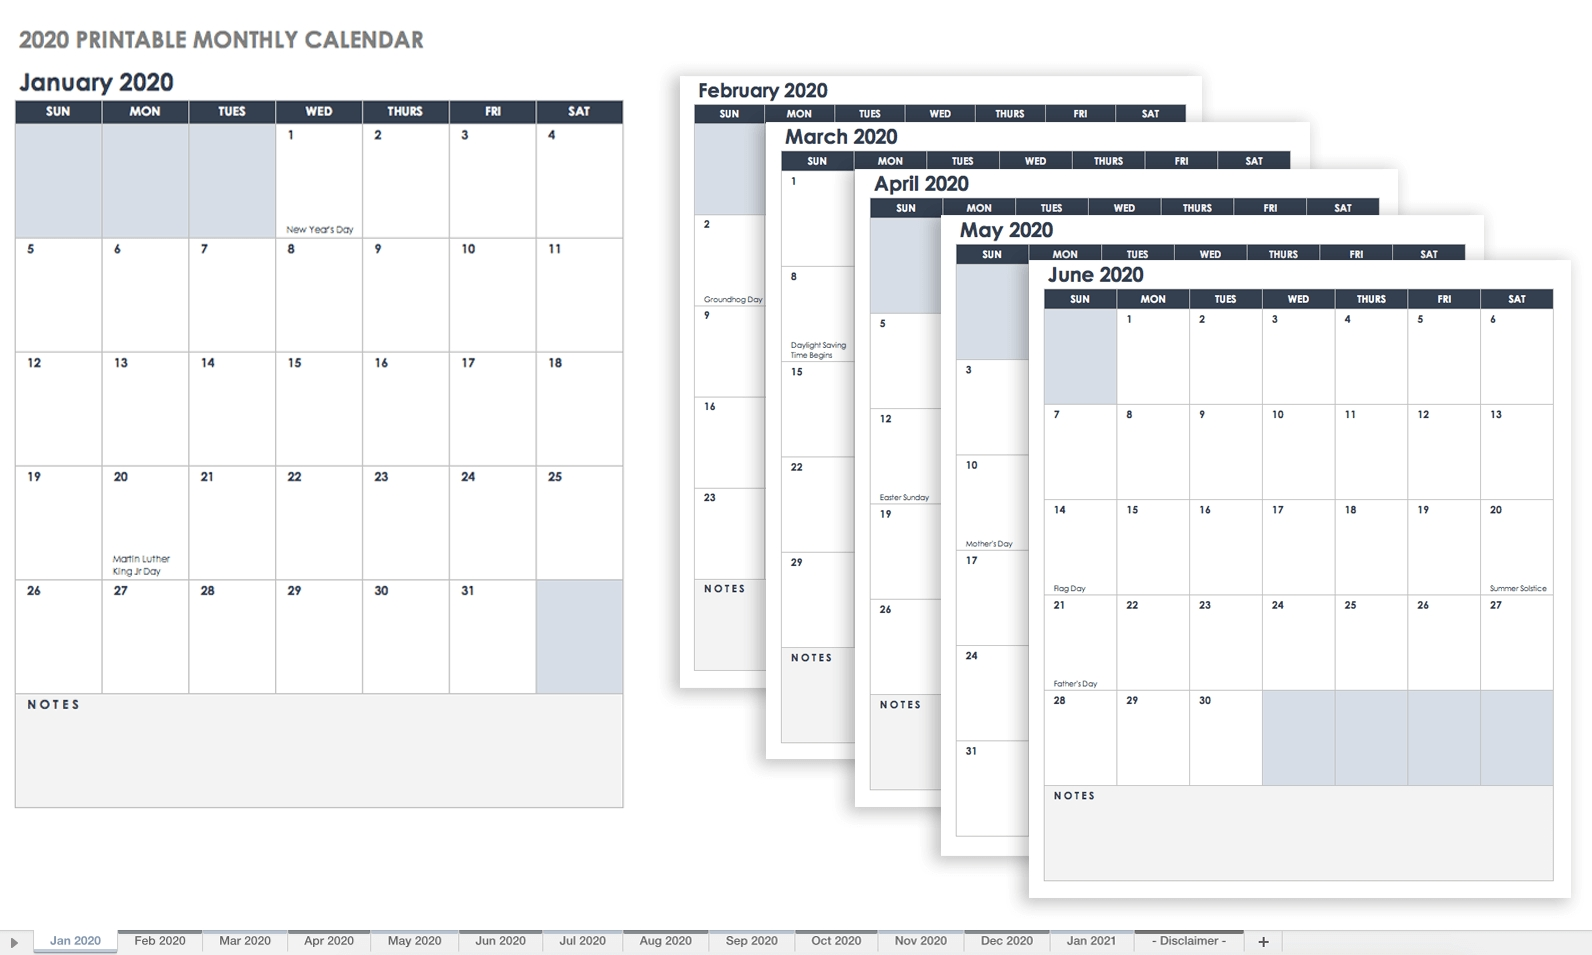 Free Blank Calendar Templates - Smartsheet inside Blank Monthly Calendar With Lines